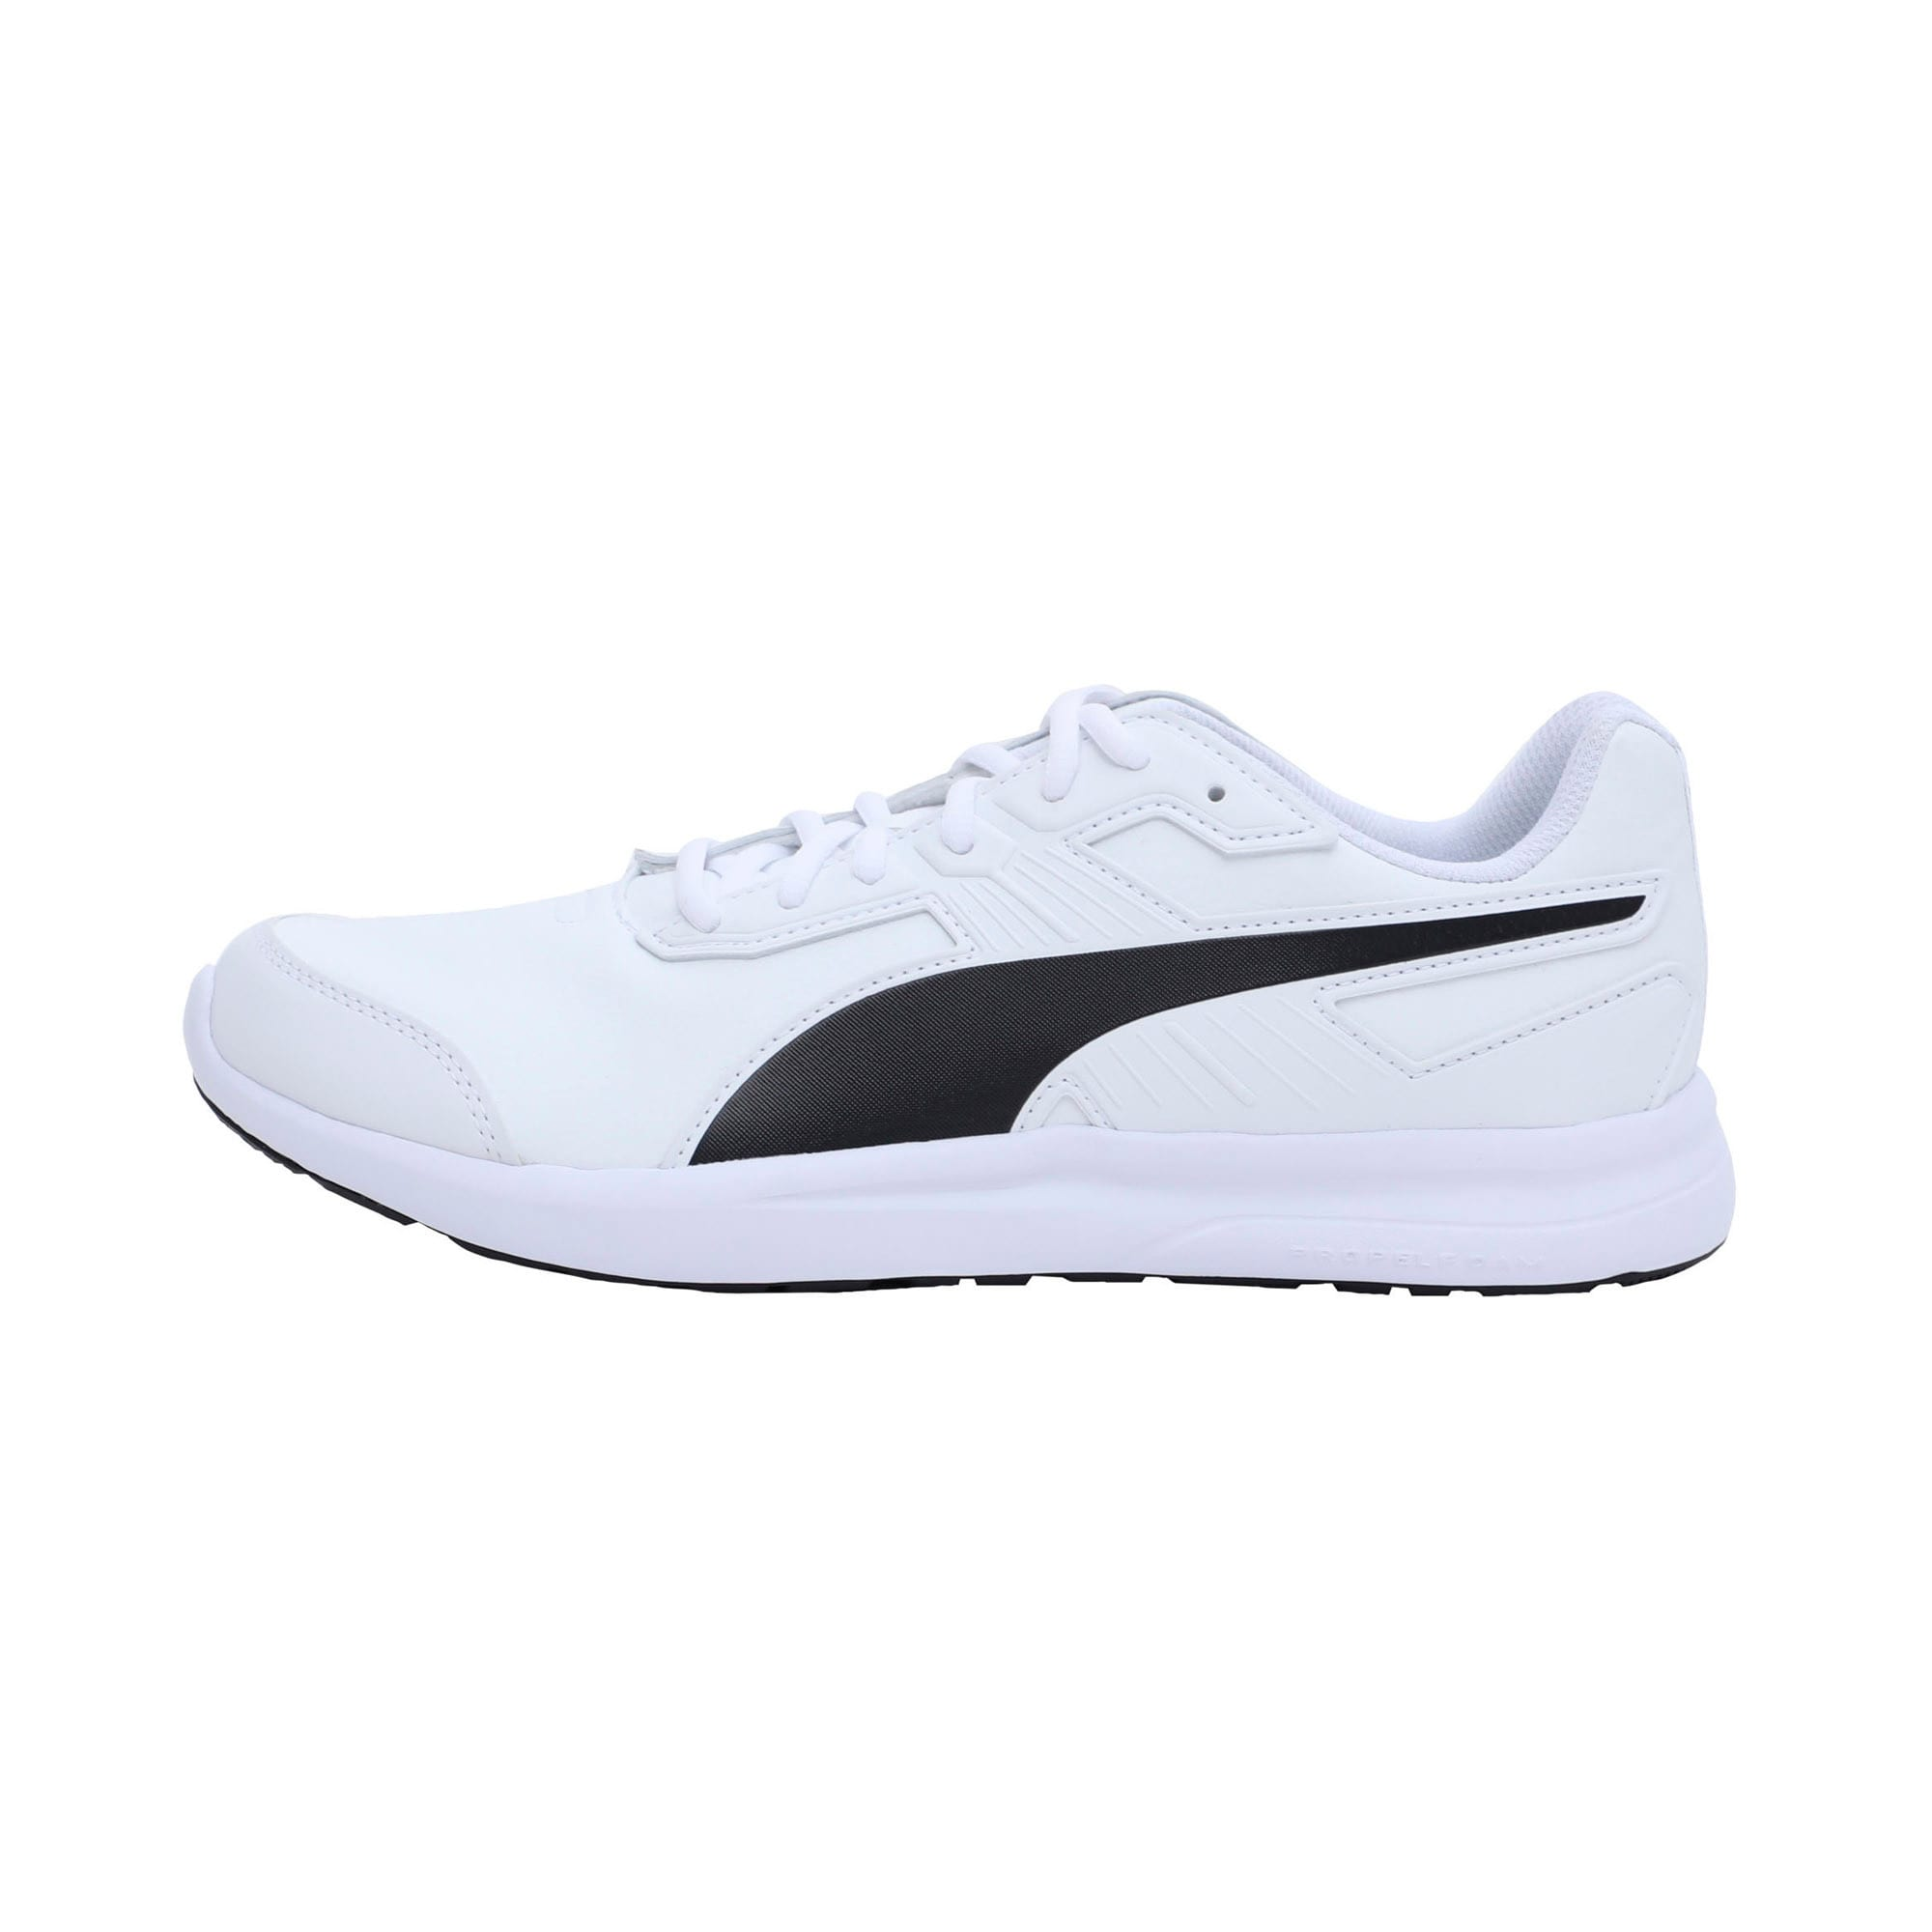 Thumbnail 1 of Escaper SL Trainers, Puma White-Puma Black, medium-IND